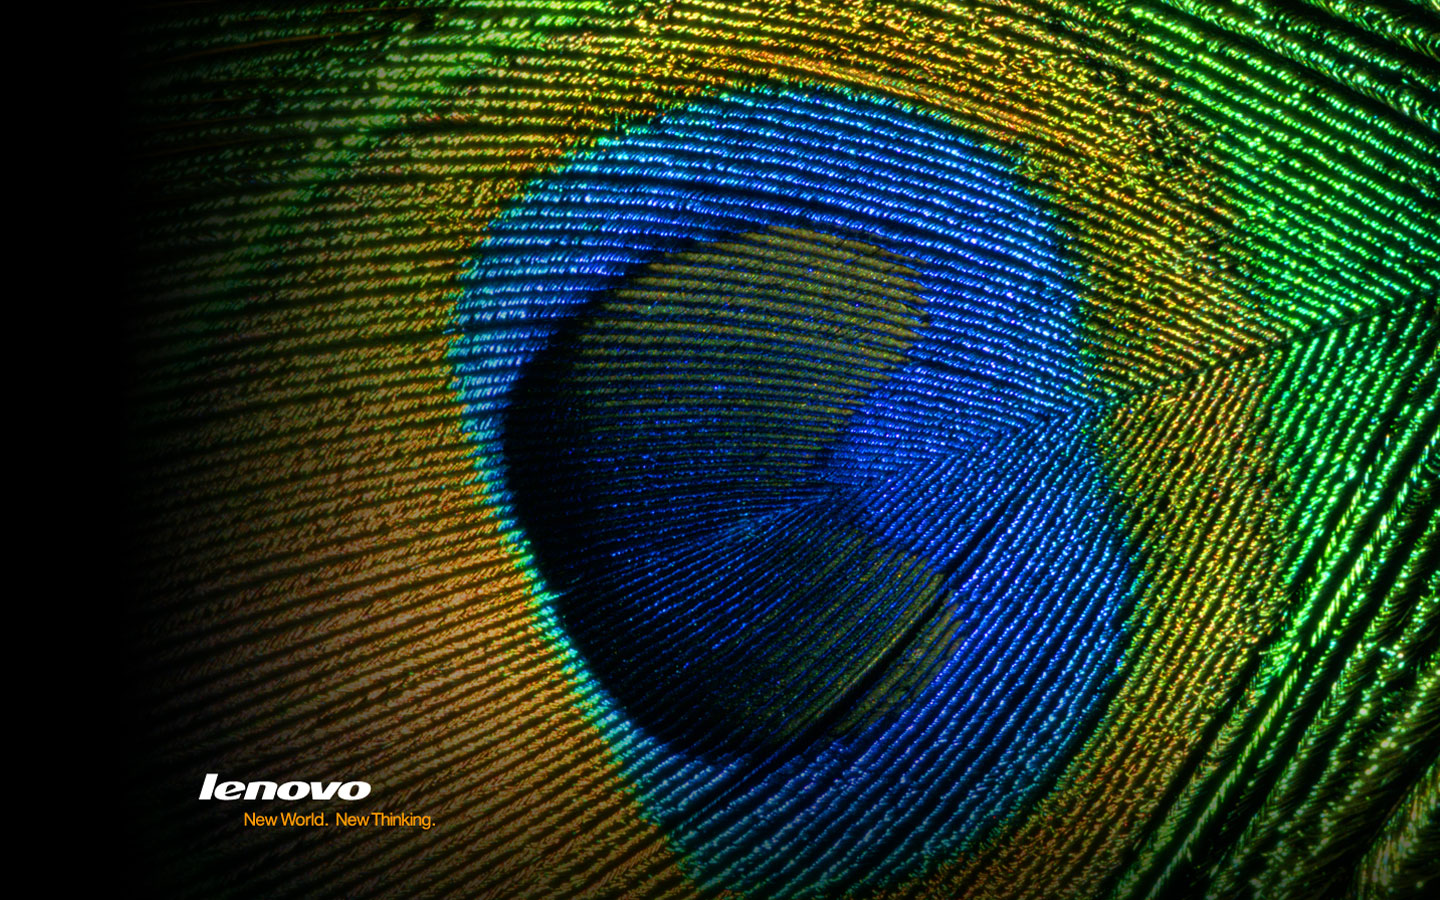 Lenovo Wallpaper Windows 7 - WallpaperSafari